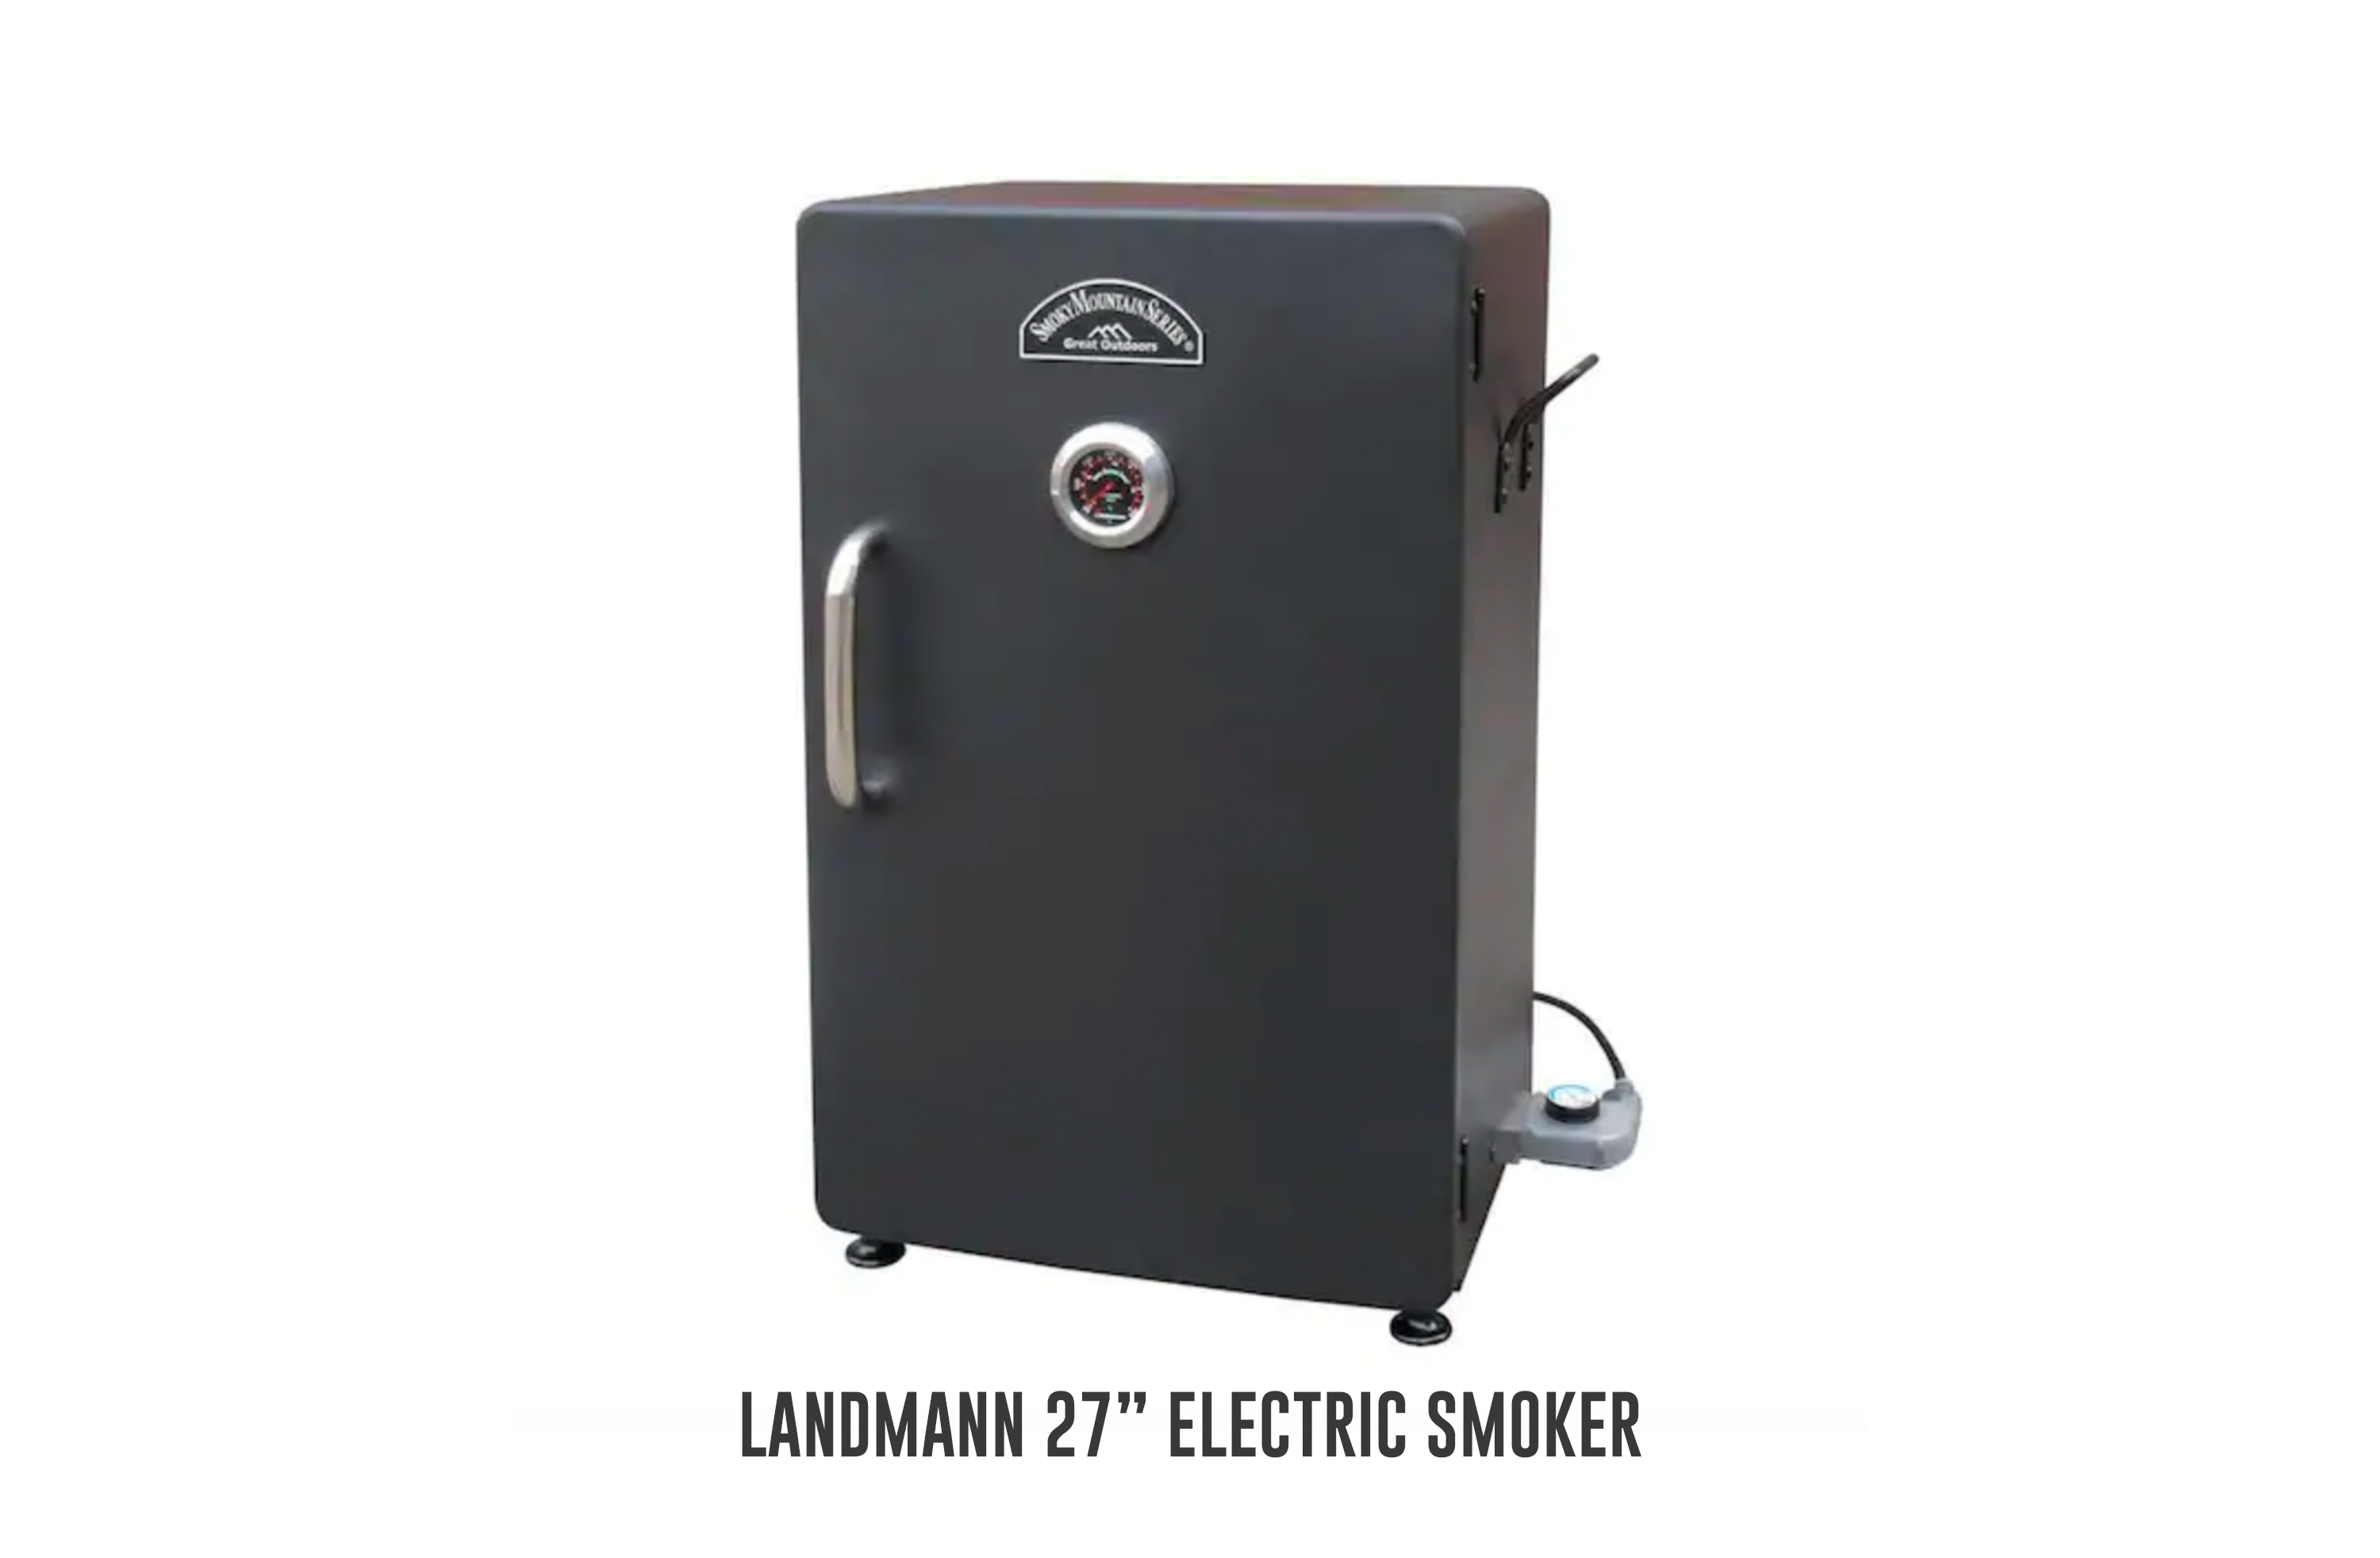 "Landmann 27"" electric smoker"